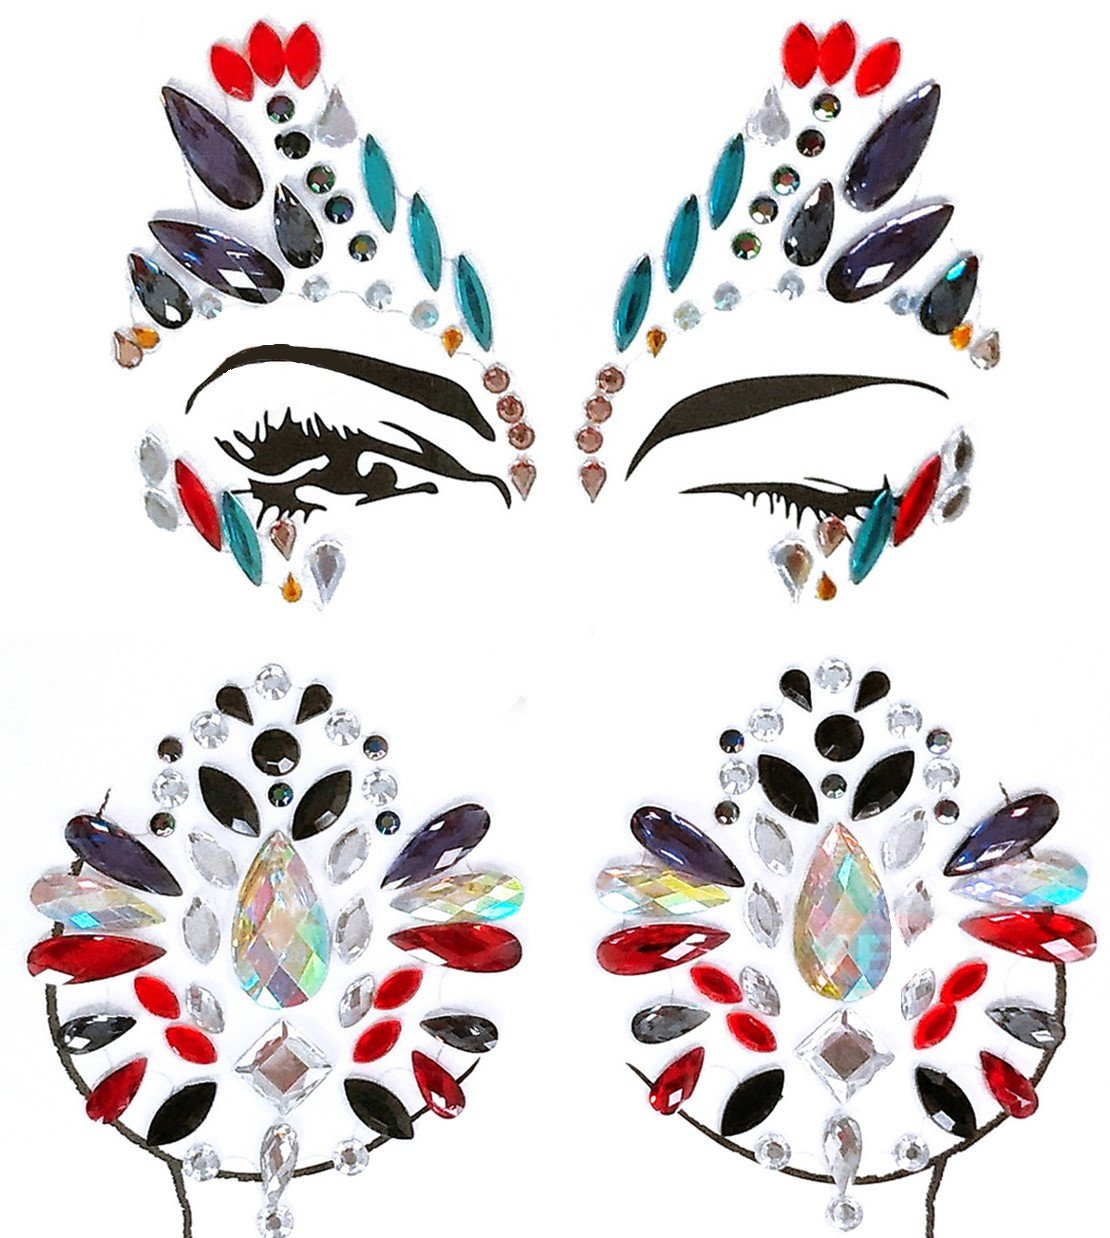 MineSign 8 Pack Face Jewels Festival Tattoo Set Face Gems Glitter Bindi Costume Makeup Rhinestone Eyes Body Rave Pasties for Party Roller (Mermaid Face Chest Kit) by MineSign (Image #5)